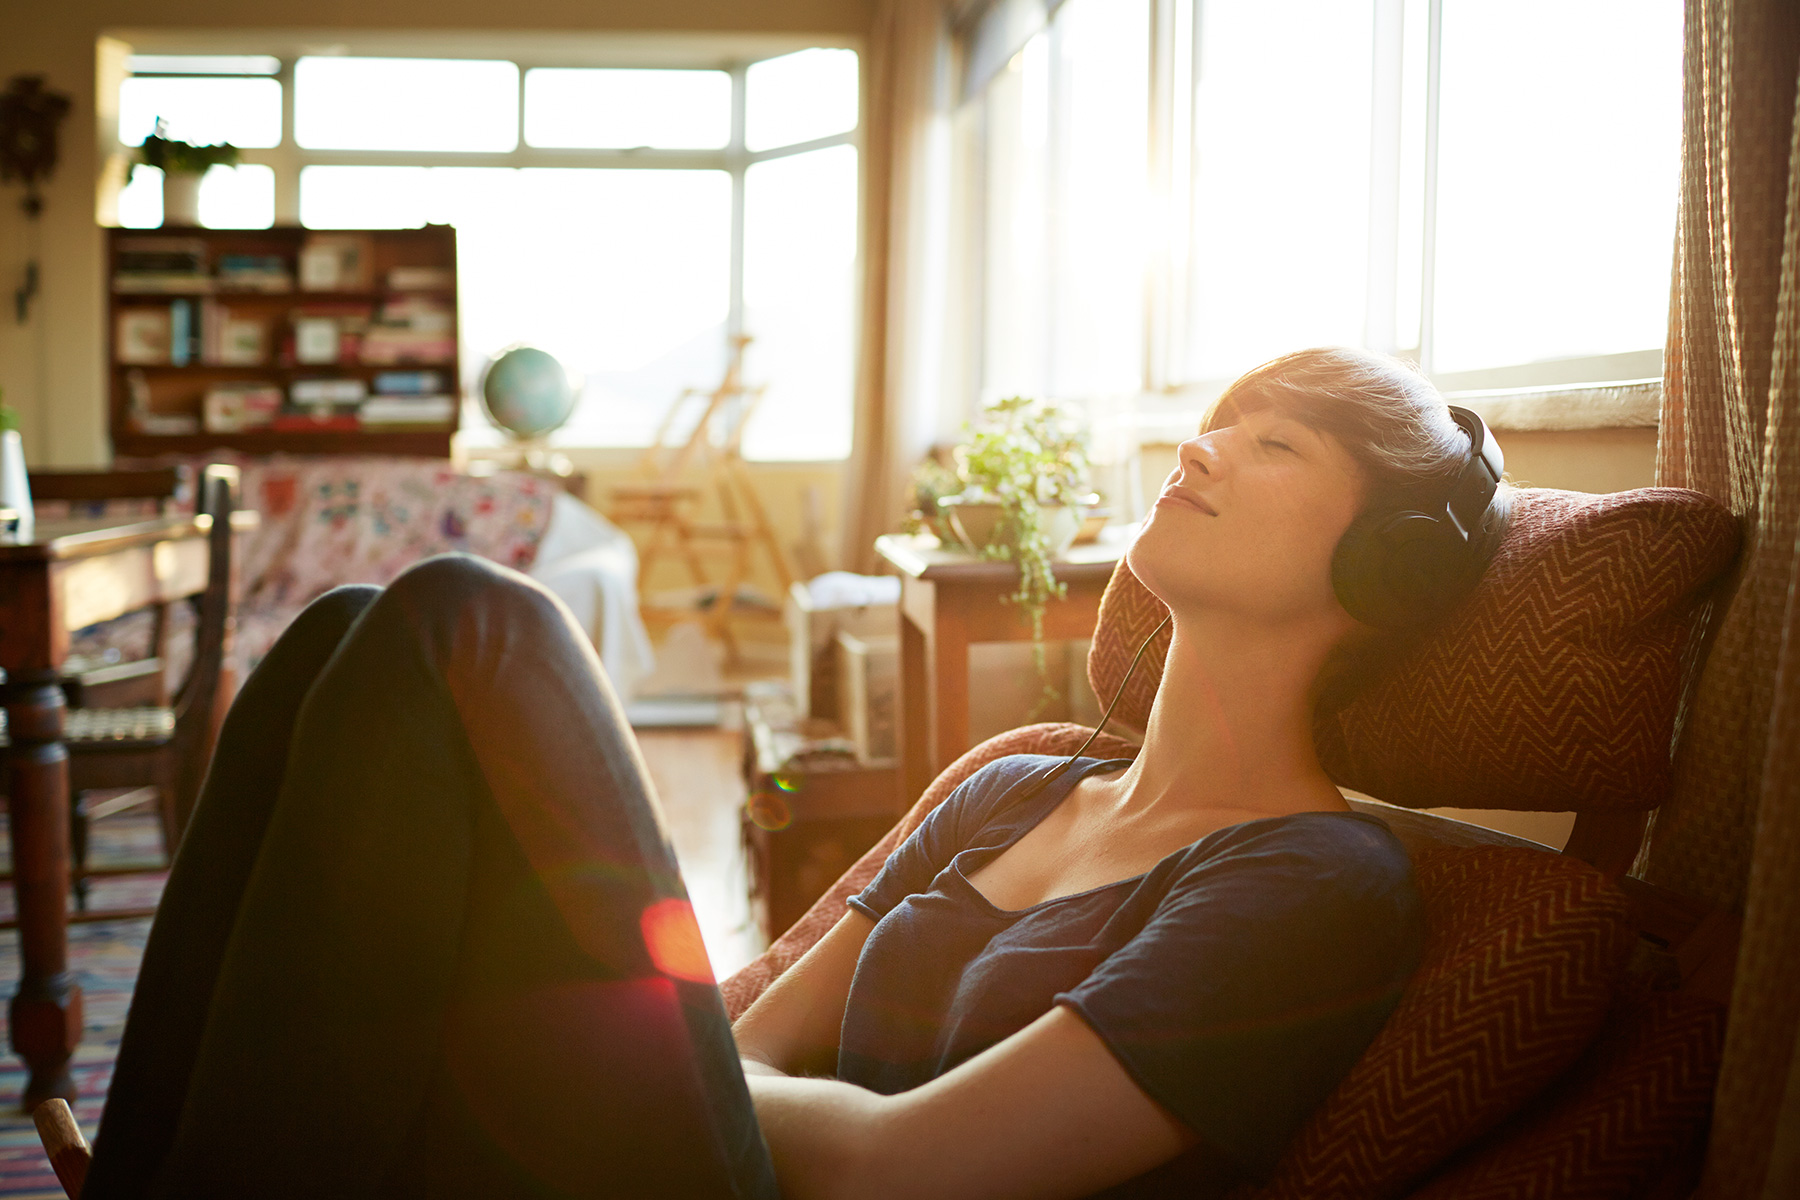 Woman with headphones relaxing at home in the sunset